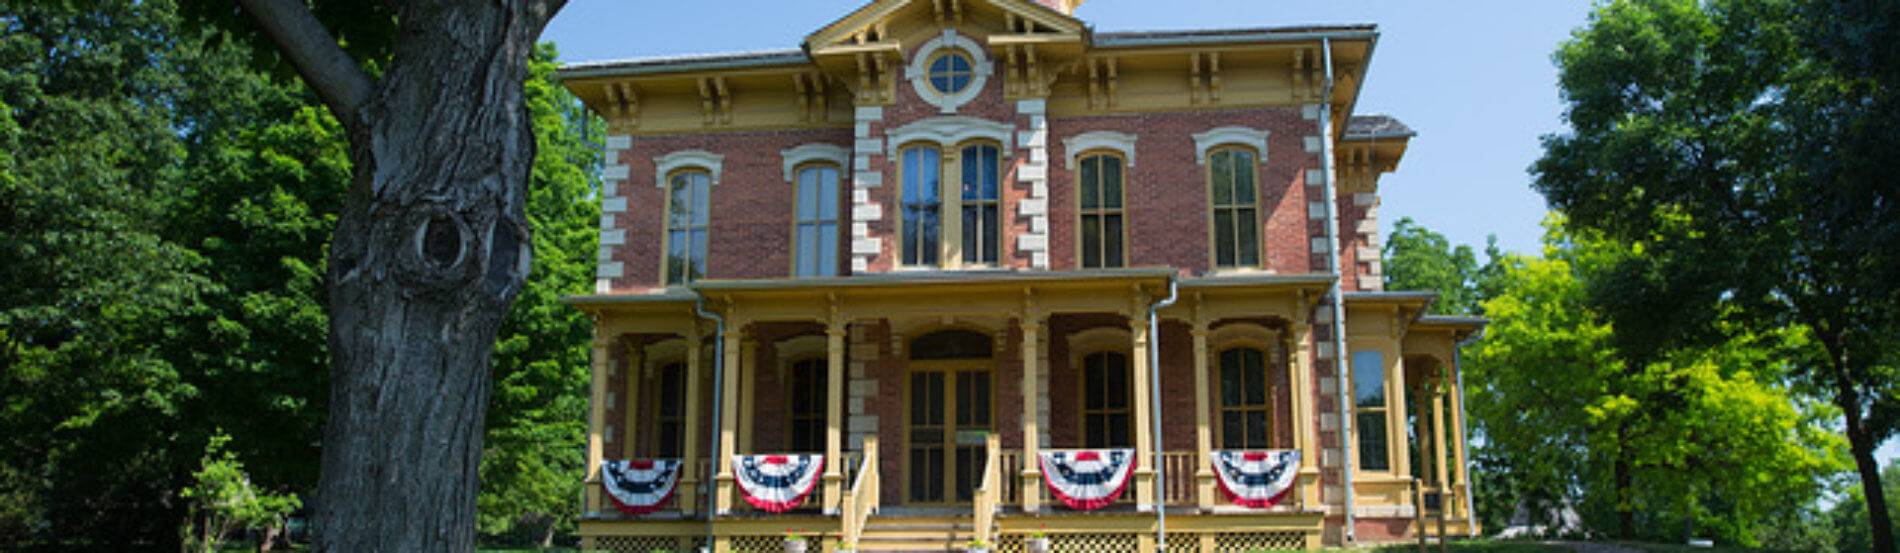 Flynn Mansion decorated for independence day